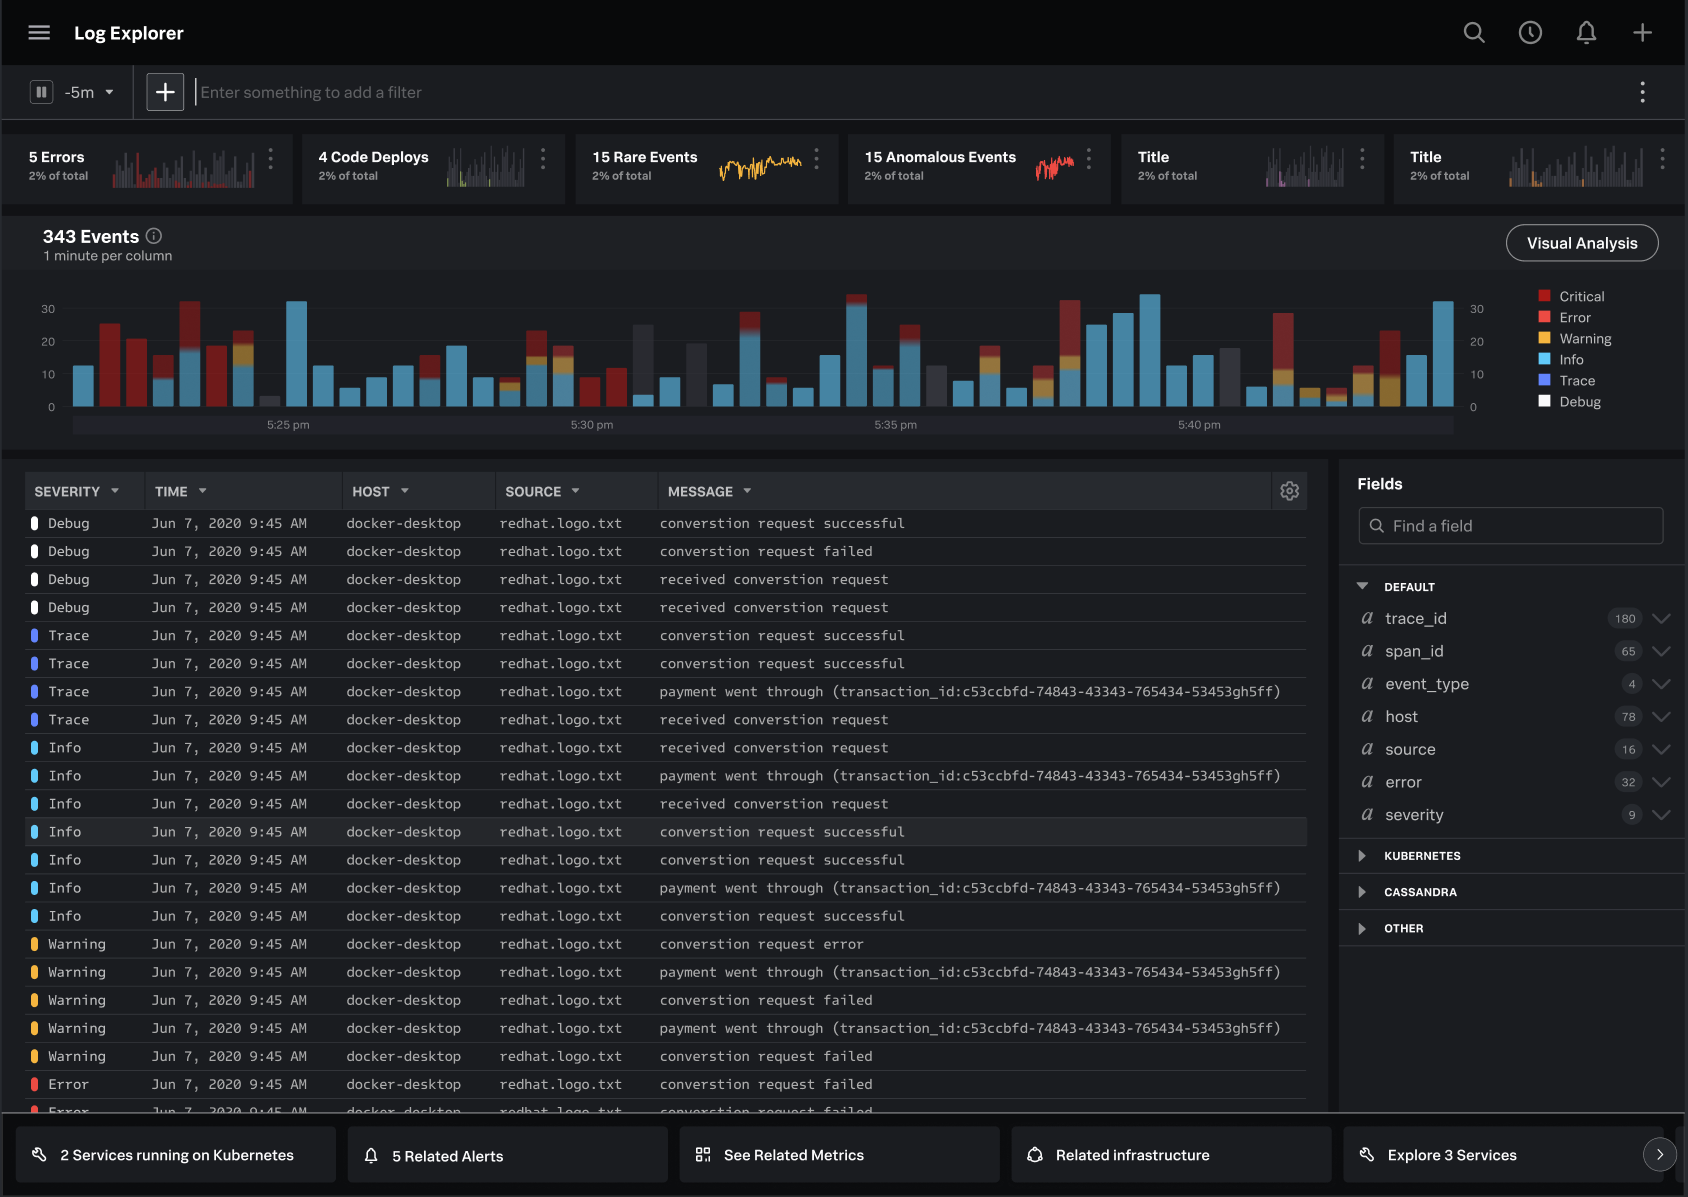 Splunk acquires Plumbr and Rigor to build out its observability platform – TechCrunch